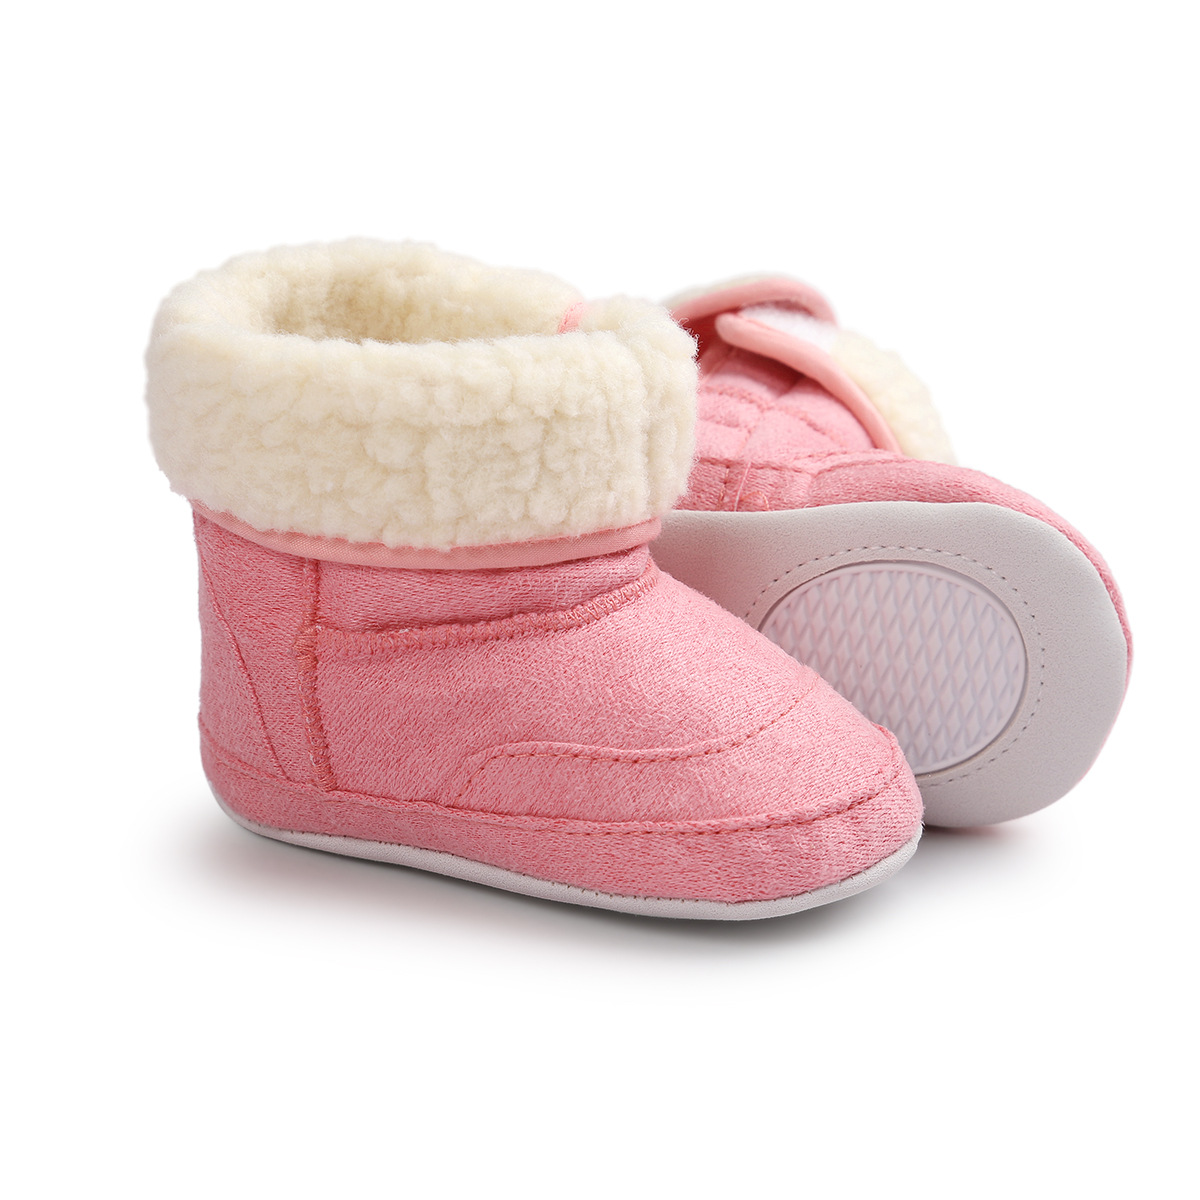 ROMIRUS 2017 Winter New Color Baby Snow Boots 0 and 1 Year Old Baby Shoes Soft Bottom Toddler Shoes 0065